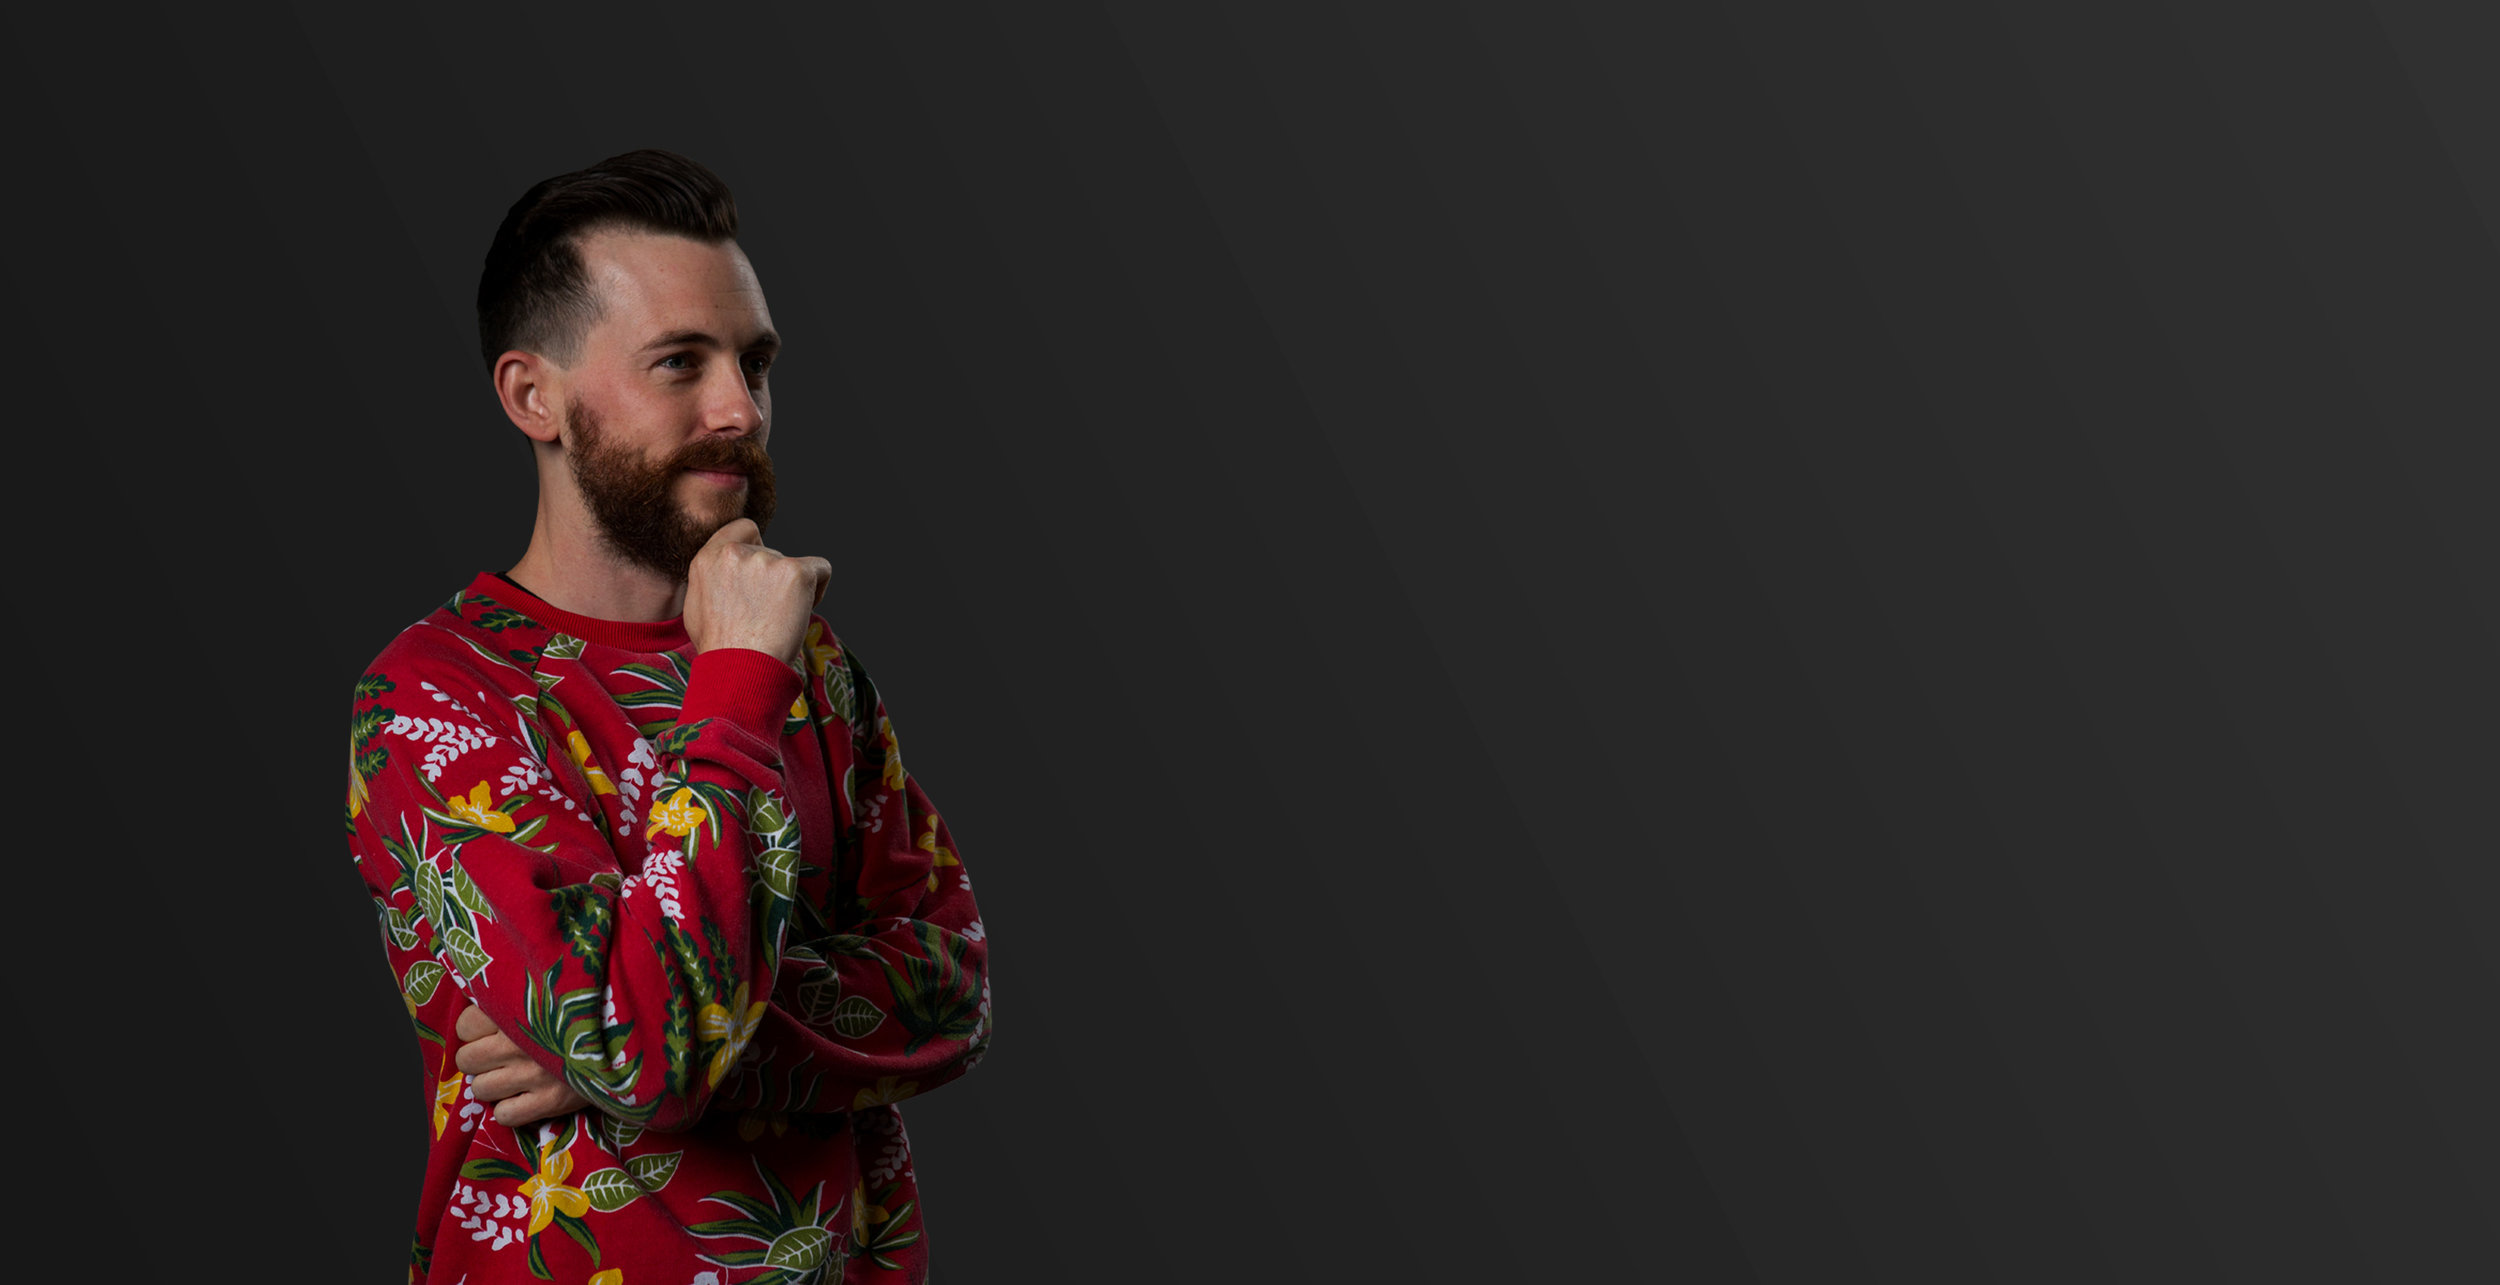 Hi! - I'm Shane, an art director and illustrator. I enjoy watching a project go from my sketch book, into the digital world, and finally, live & thrive in the real world. I love to create icons, line art, and custom typography. I hope you enjoy my work and know that I'm always available to discuss design or talk about life over coffee, beer, or a glass of whisky.I am currently taking on freelance work.